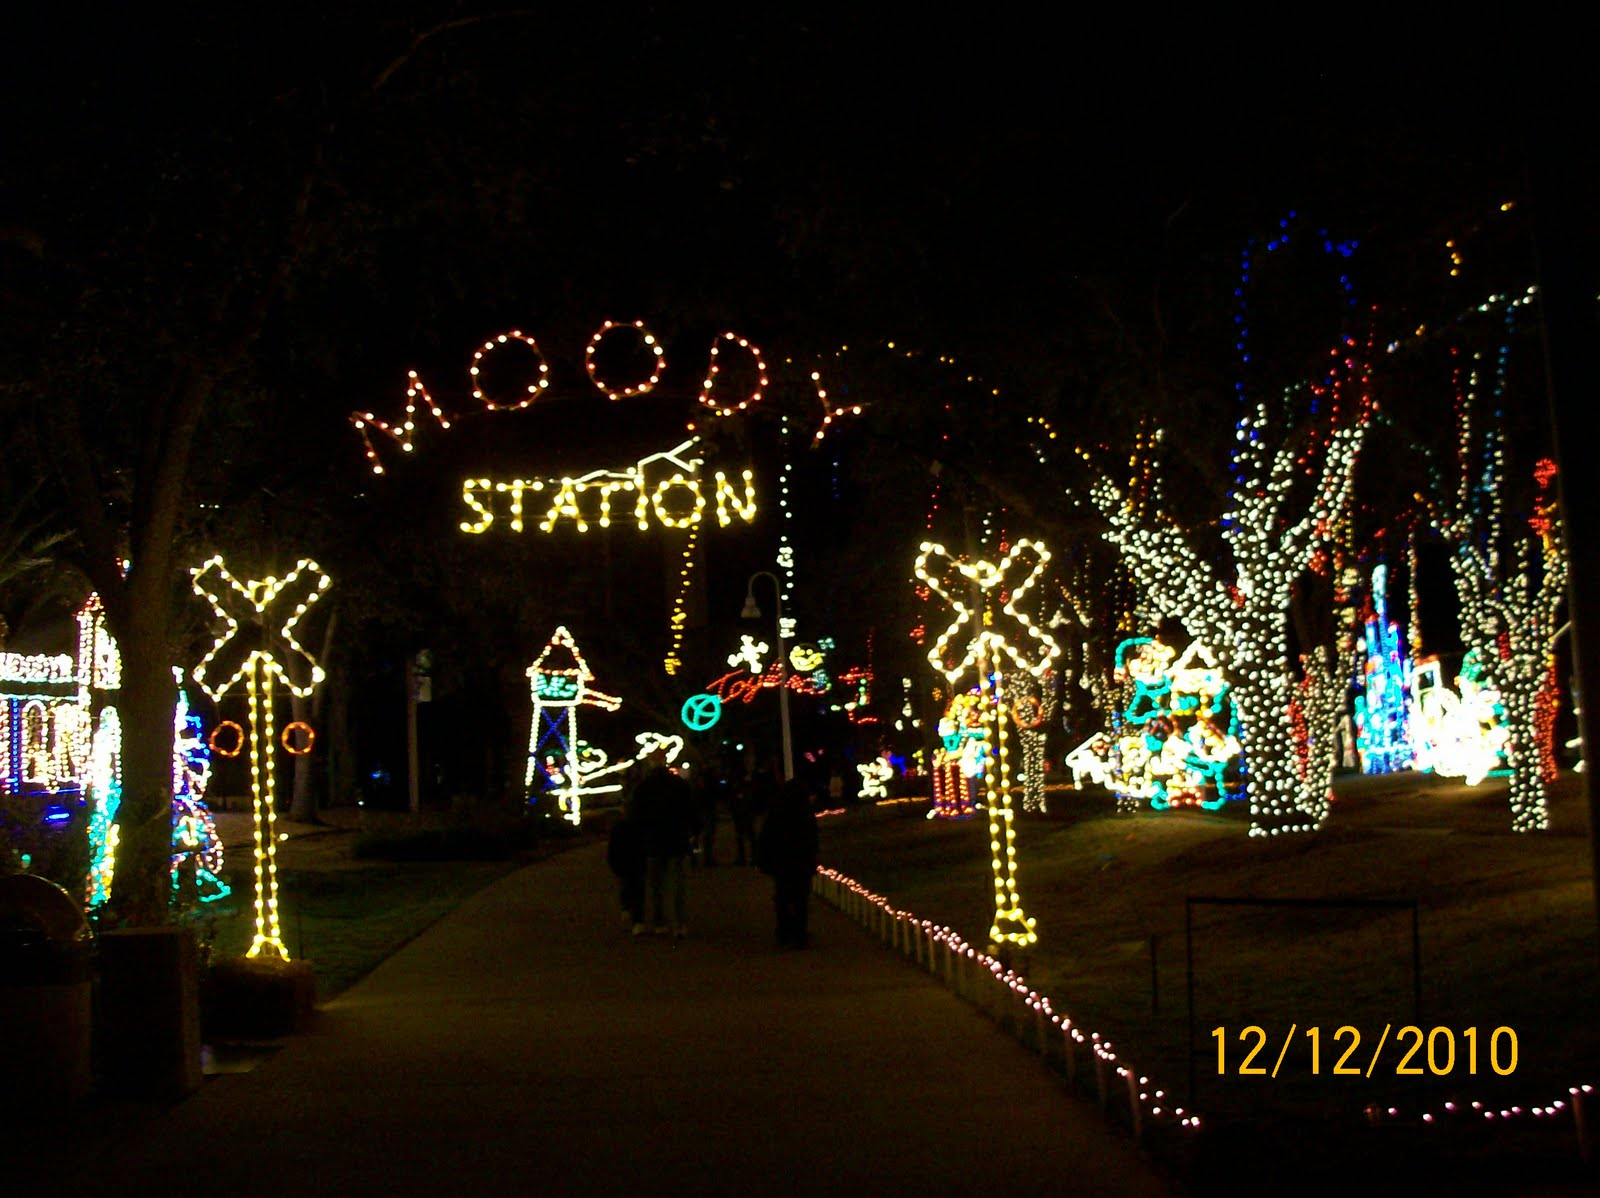 The youngs moody gardens festival of lights - Moody gardens festival of lights 2016 ...